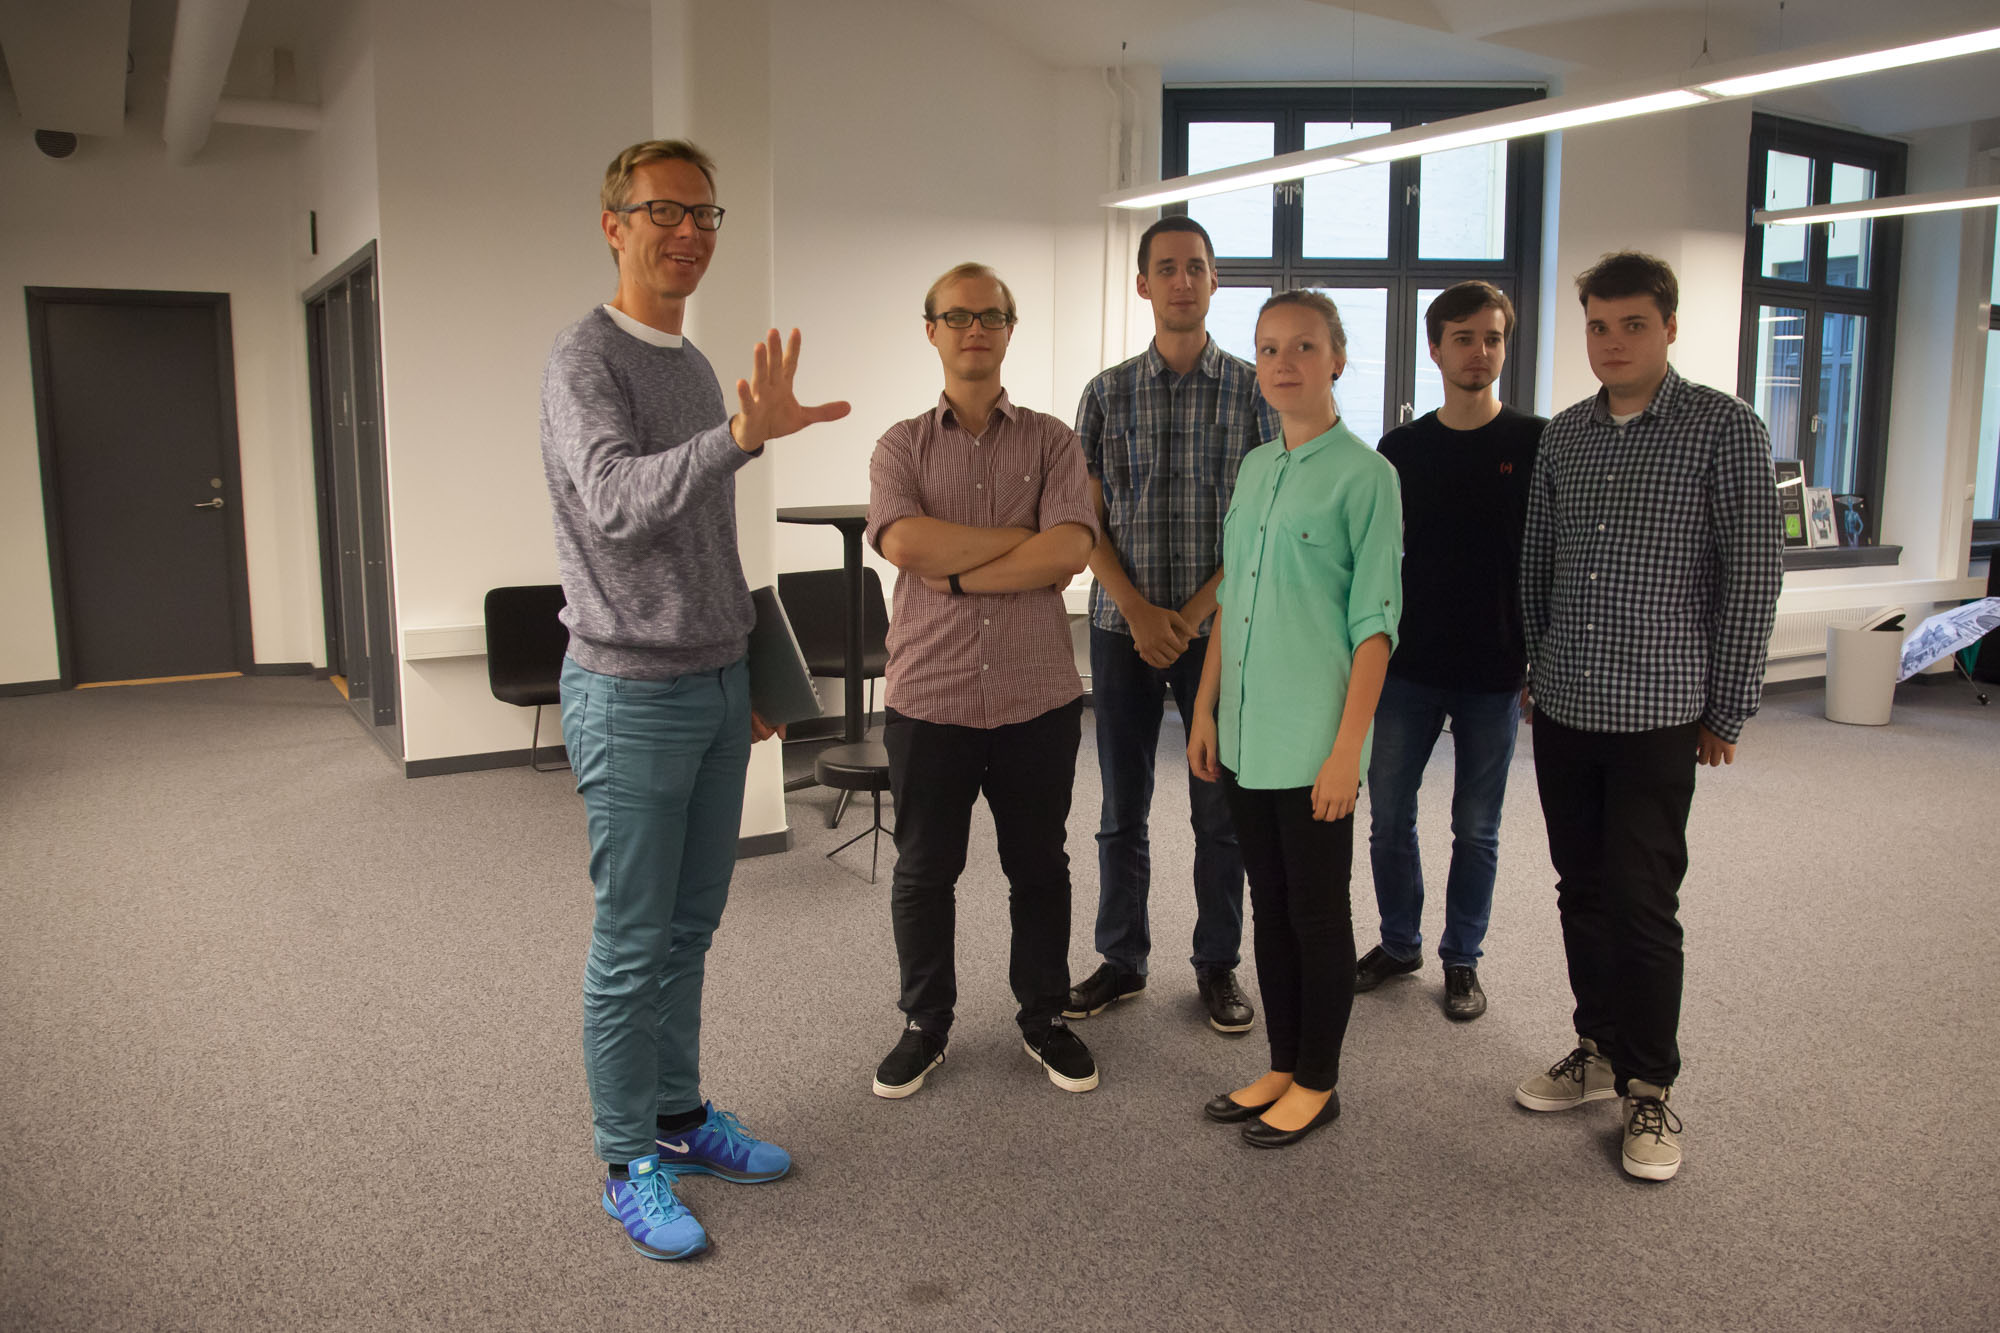 Head of Client Development Pål Berg showed the summer interns the Oslo offices of the streaming music service Tidal